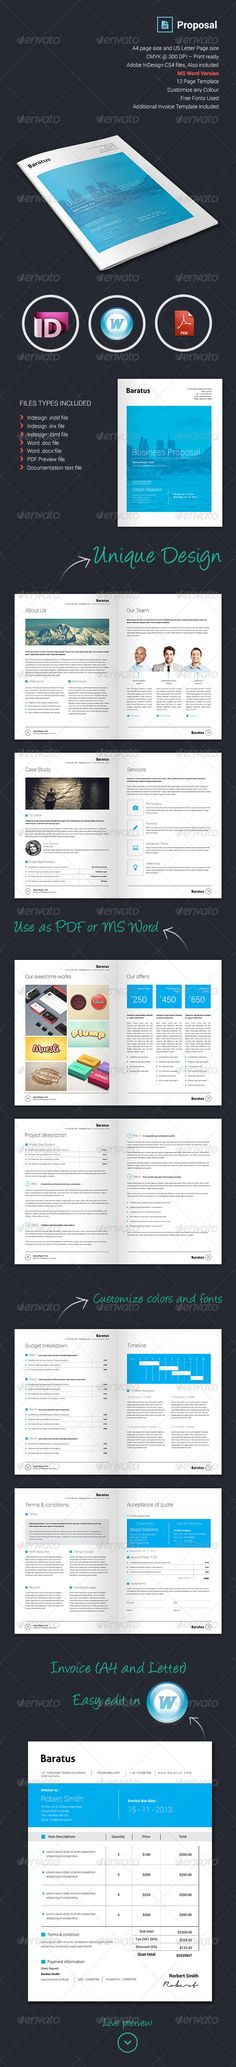 Professional Proposal Template Proposal templates, Proposals and - professional proposal templates